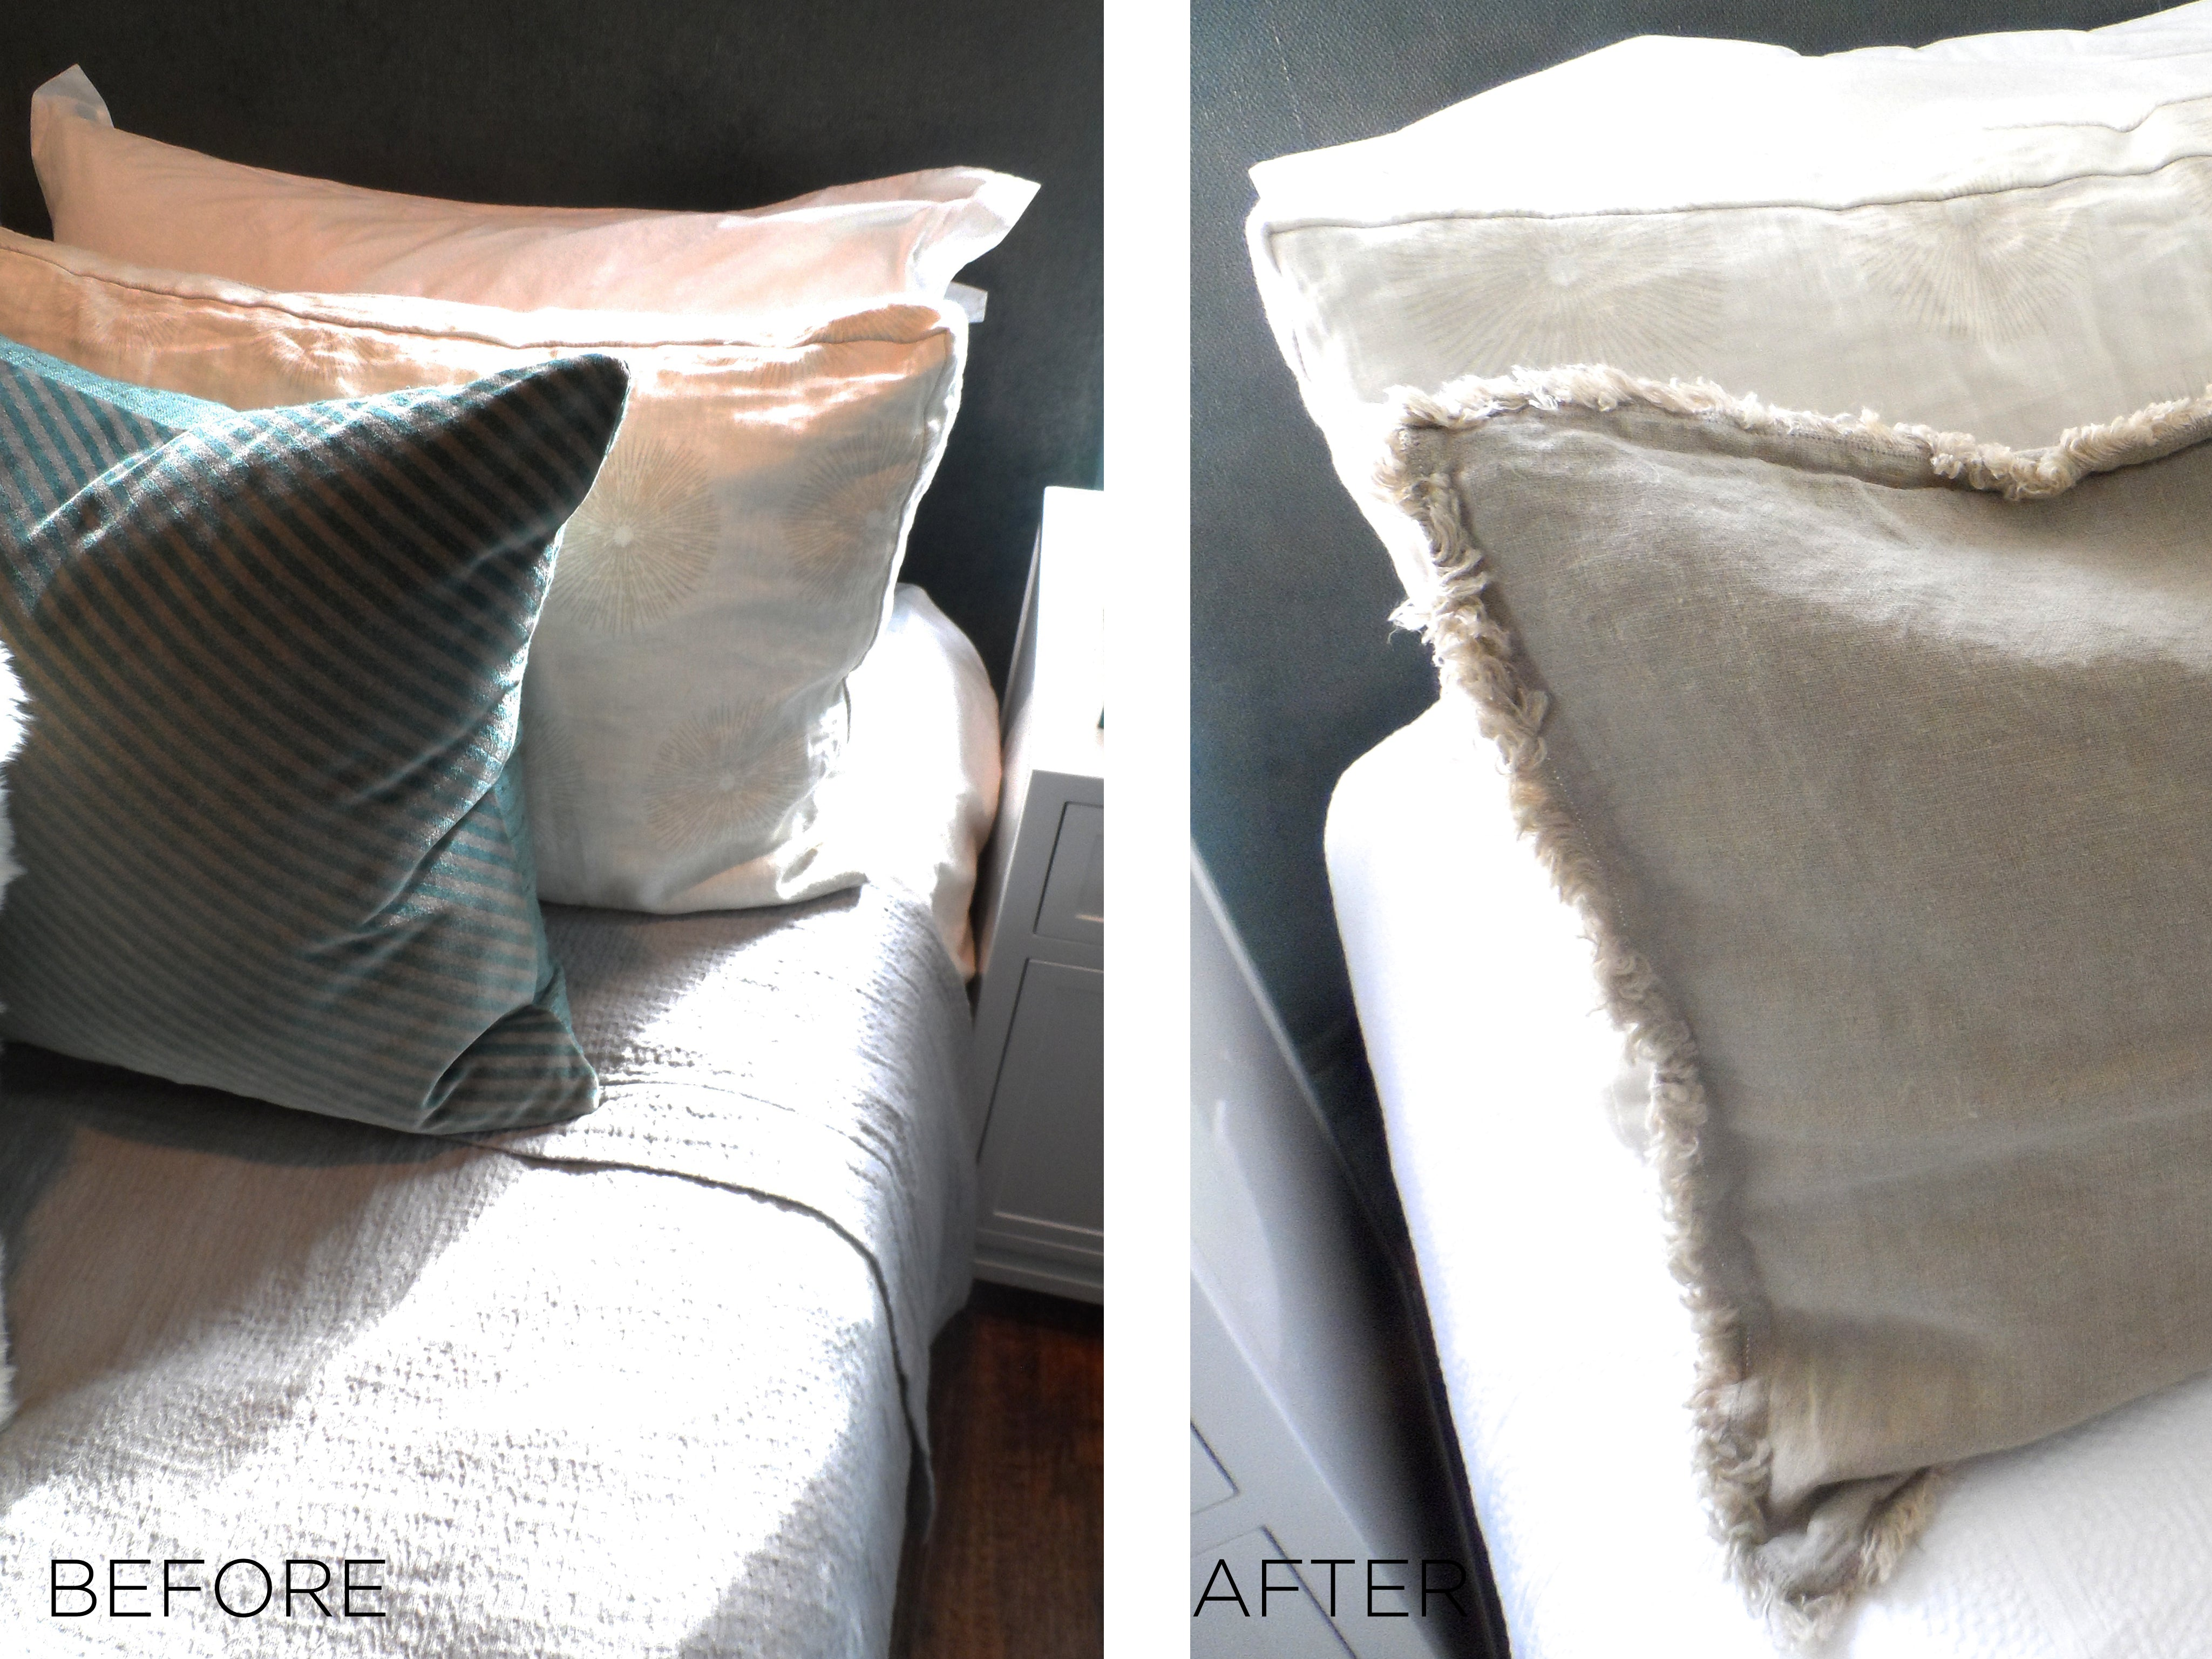 Before and after shots of pillow sham changes